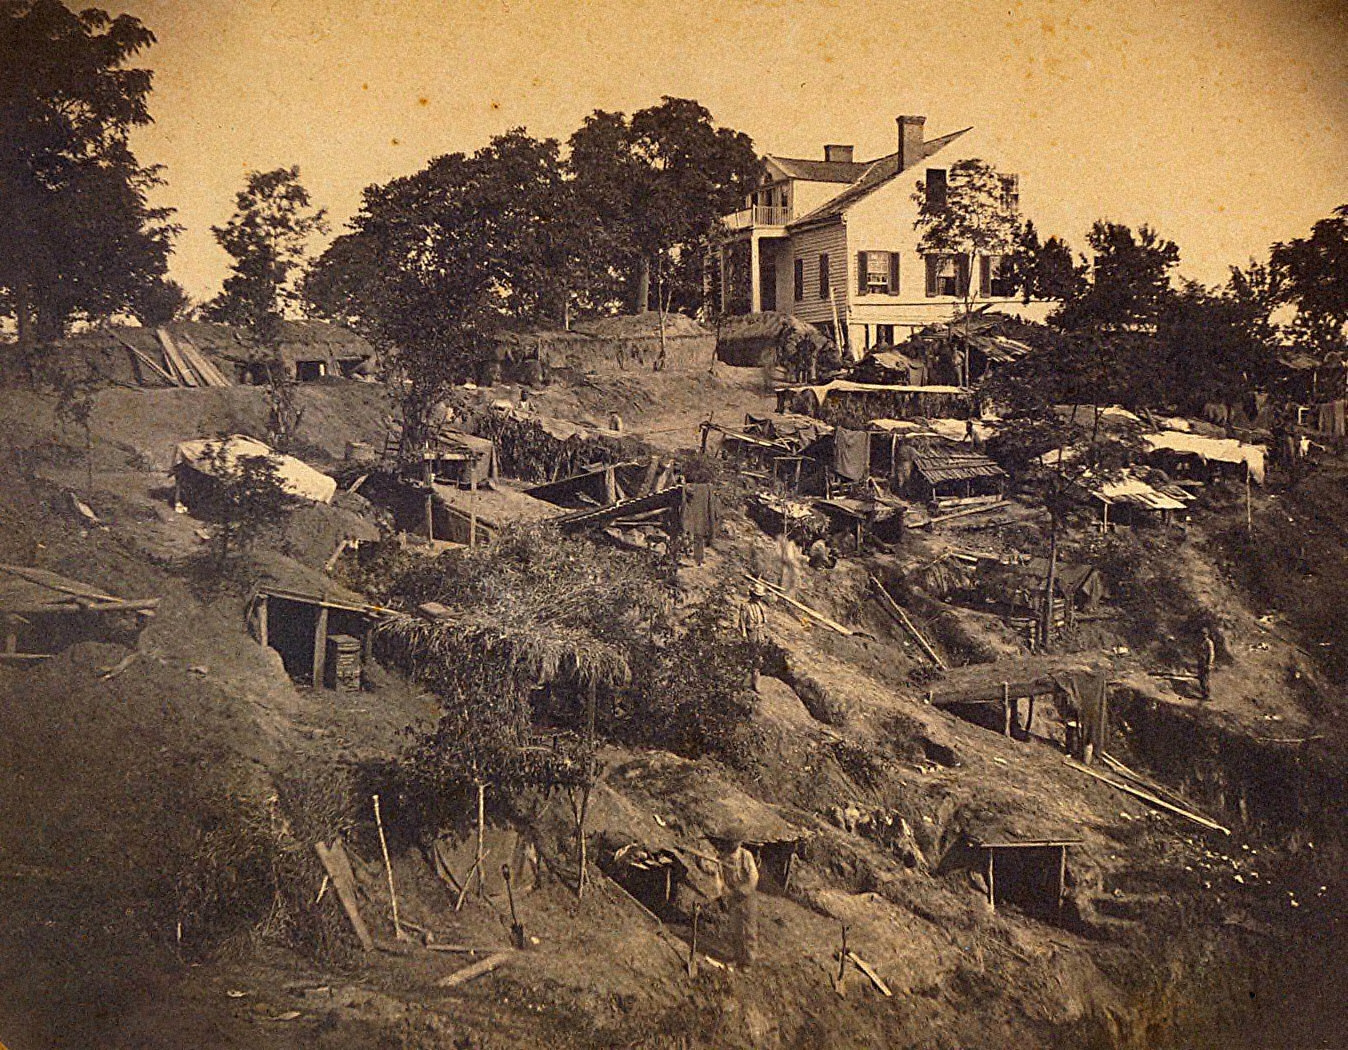 Bivouac of the 45th Illinois near the Shirley House, Vicksburg, Mississippi